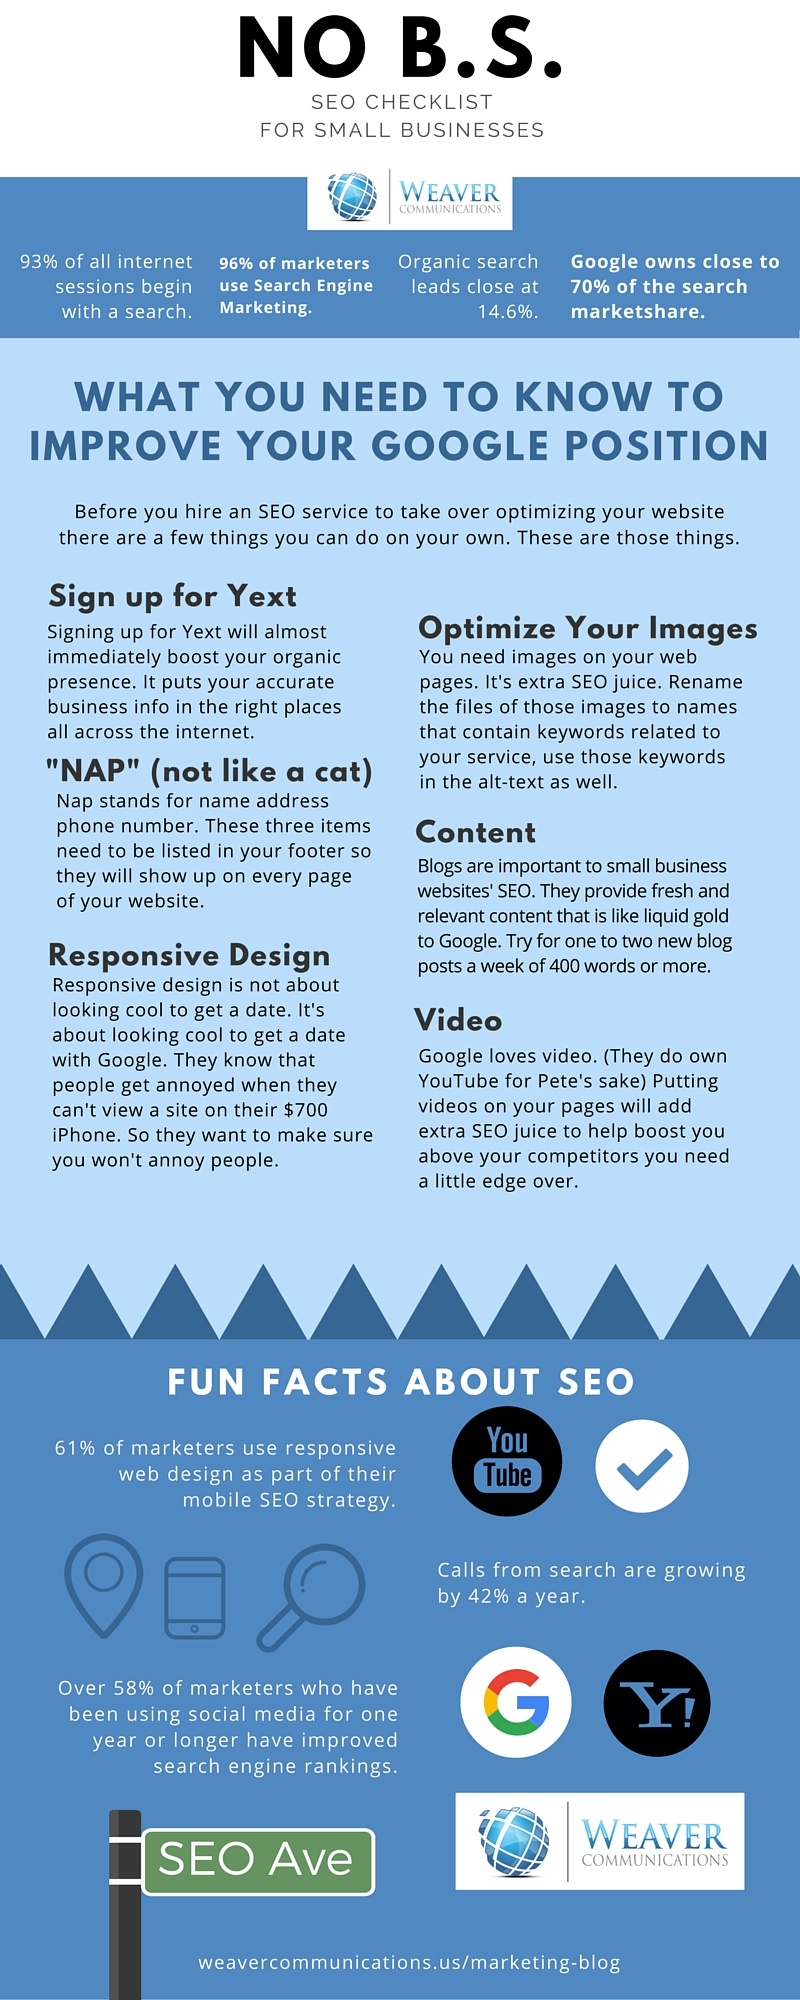 checklist for small businesses to take advantage of SEO to generate leads